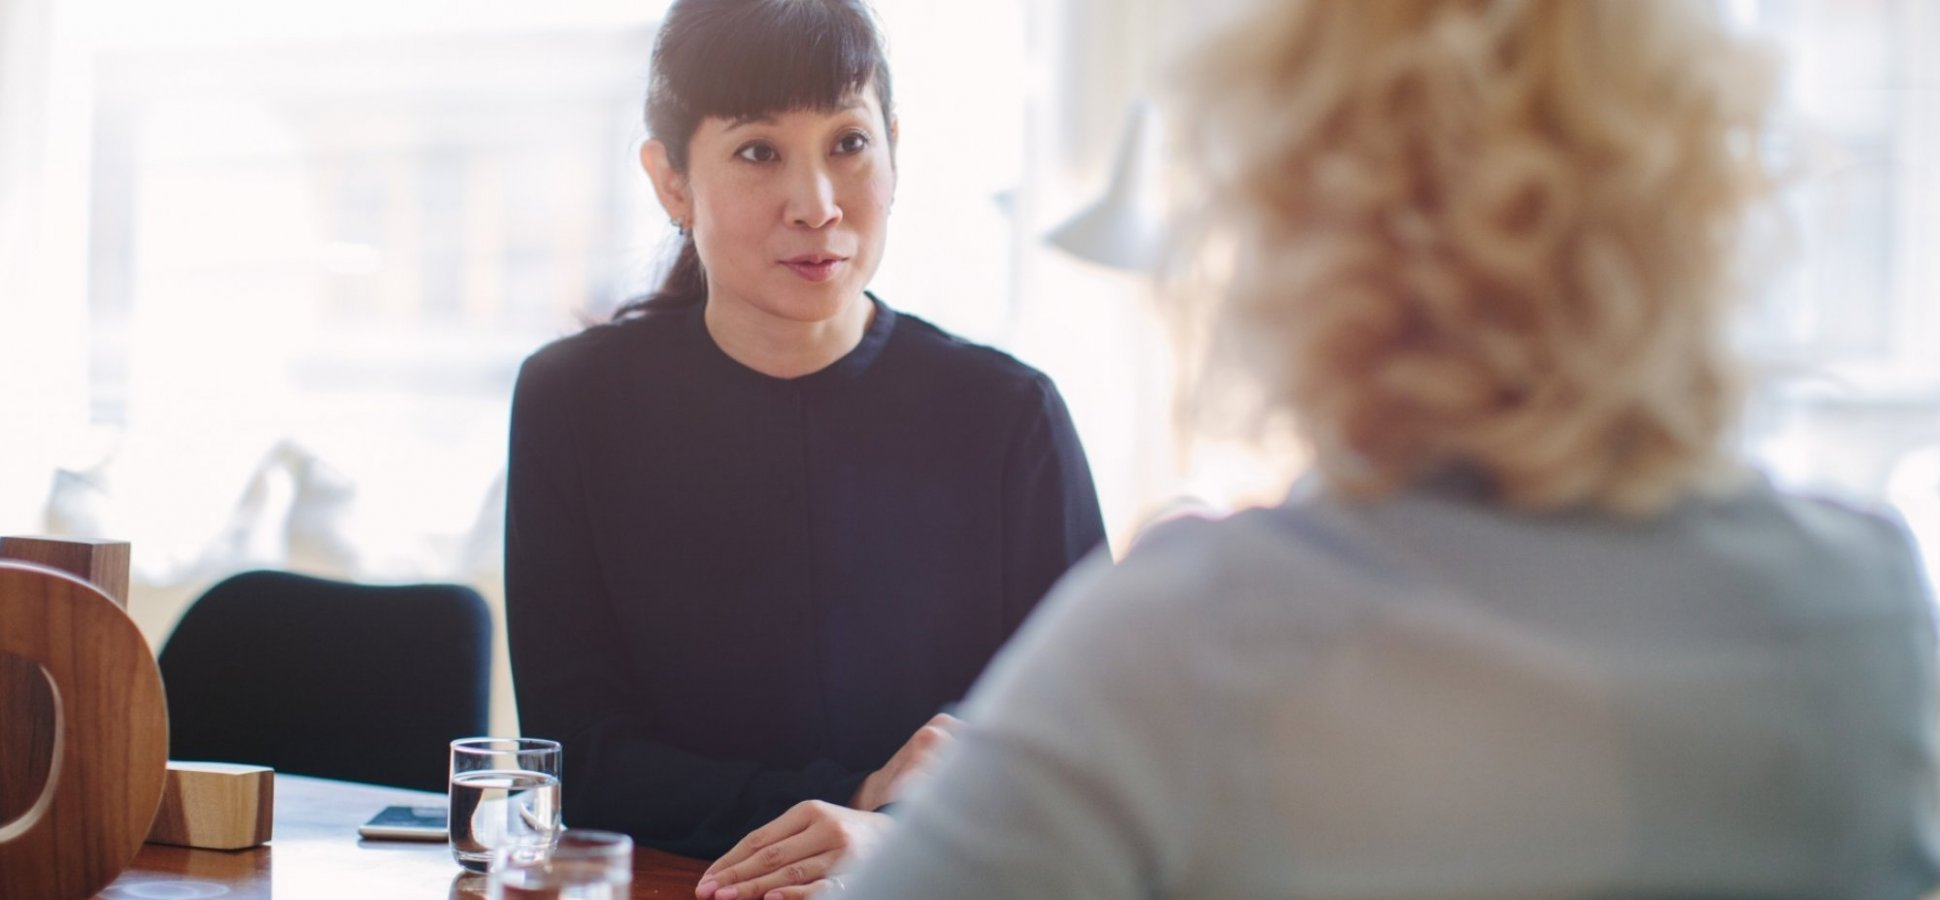 Why You Should Never Ask This 1 Question in a Job Interview